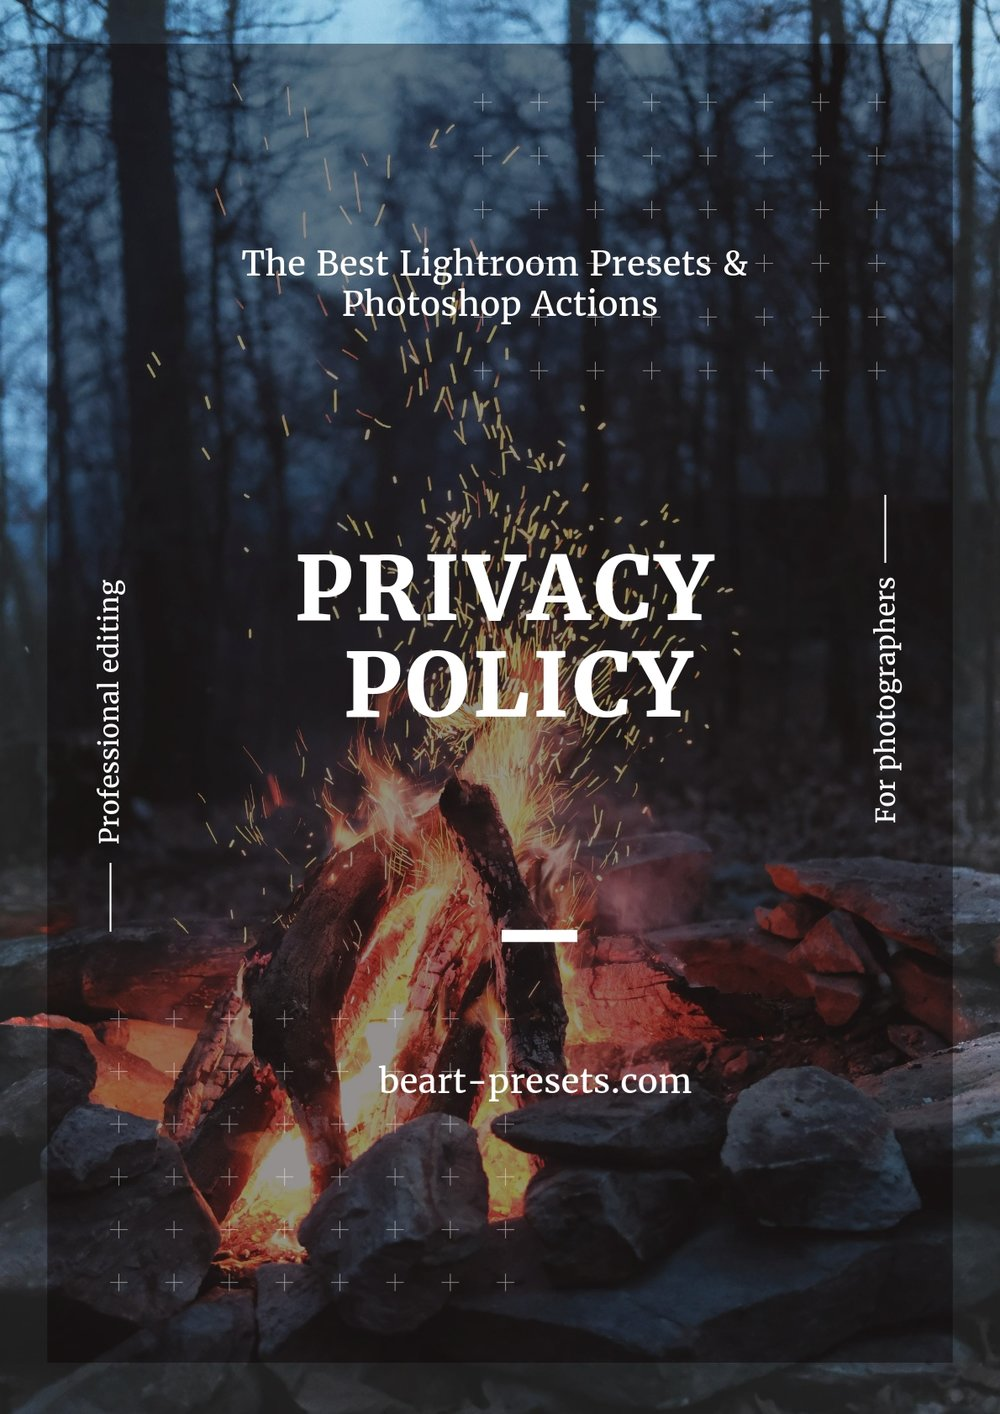 PRIVACY POLICY by beart